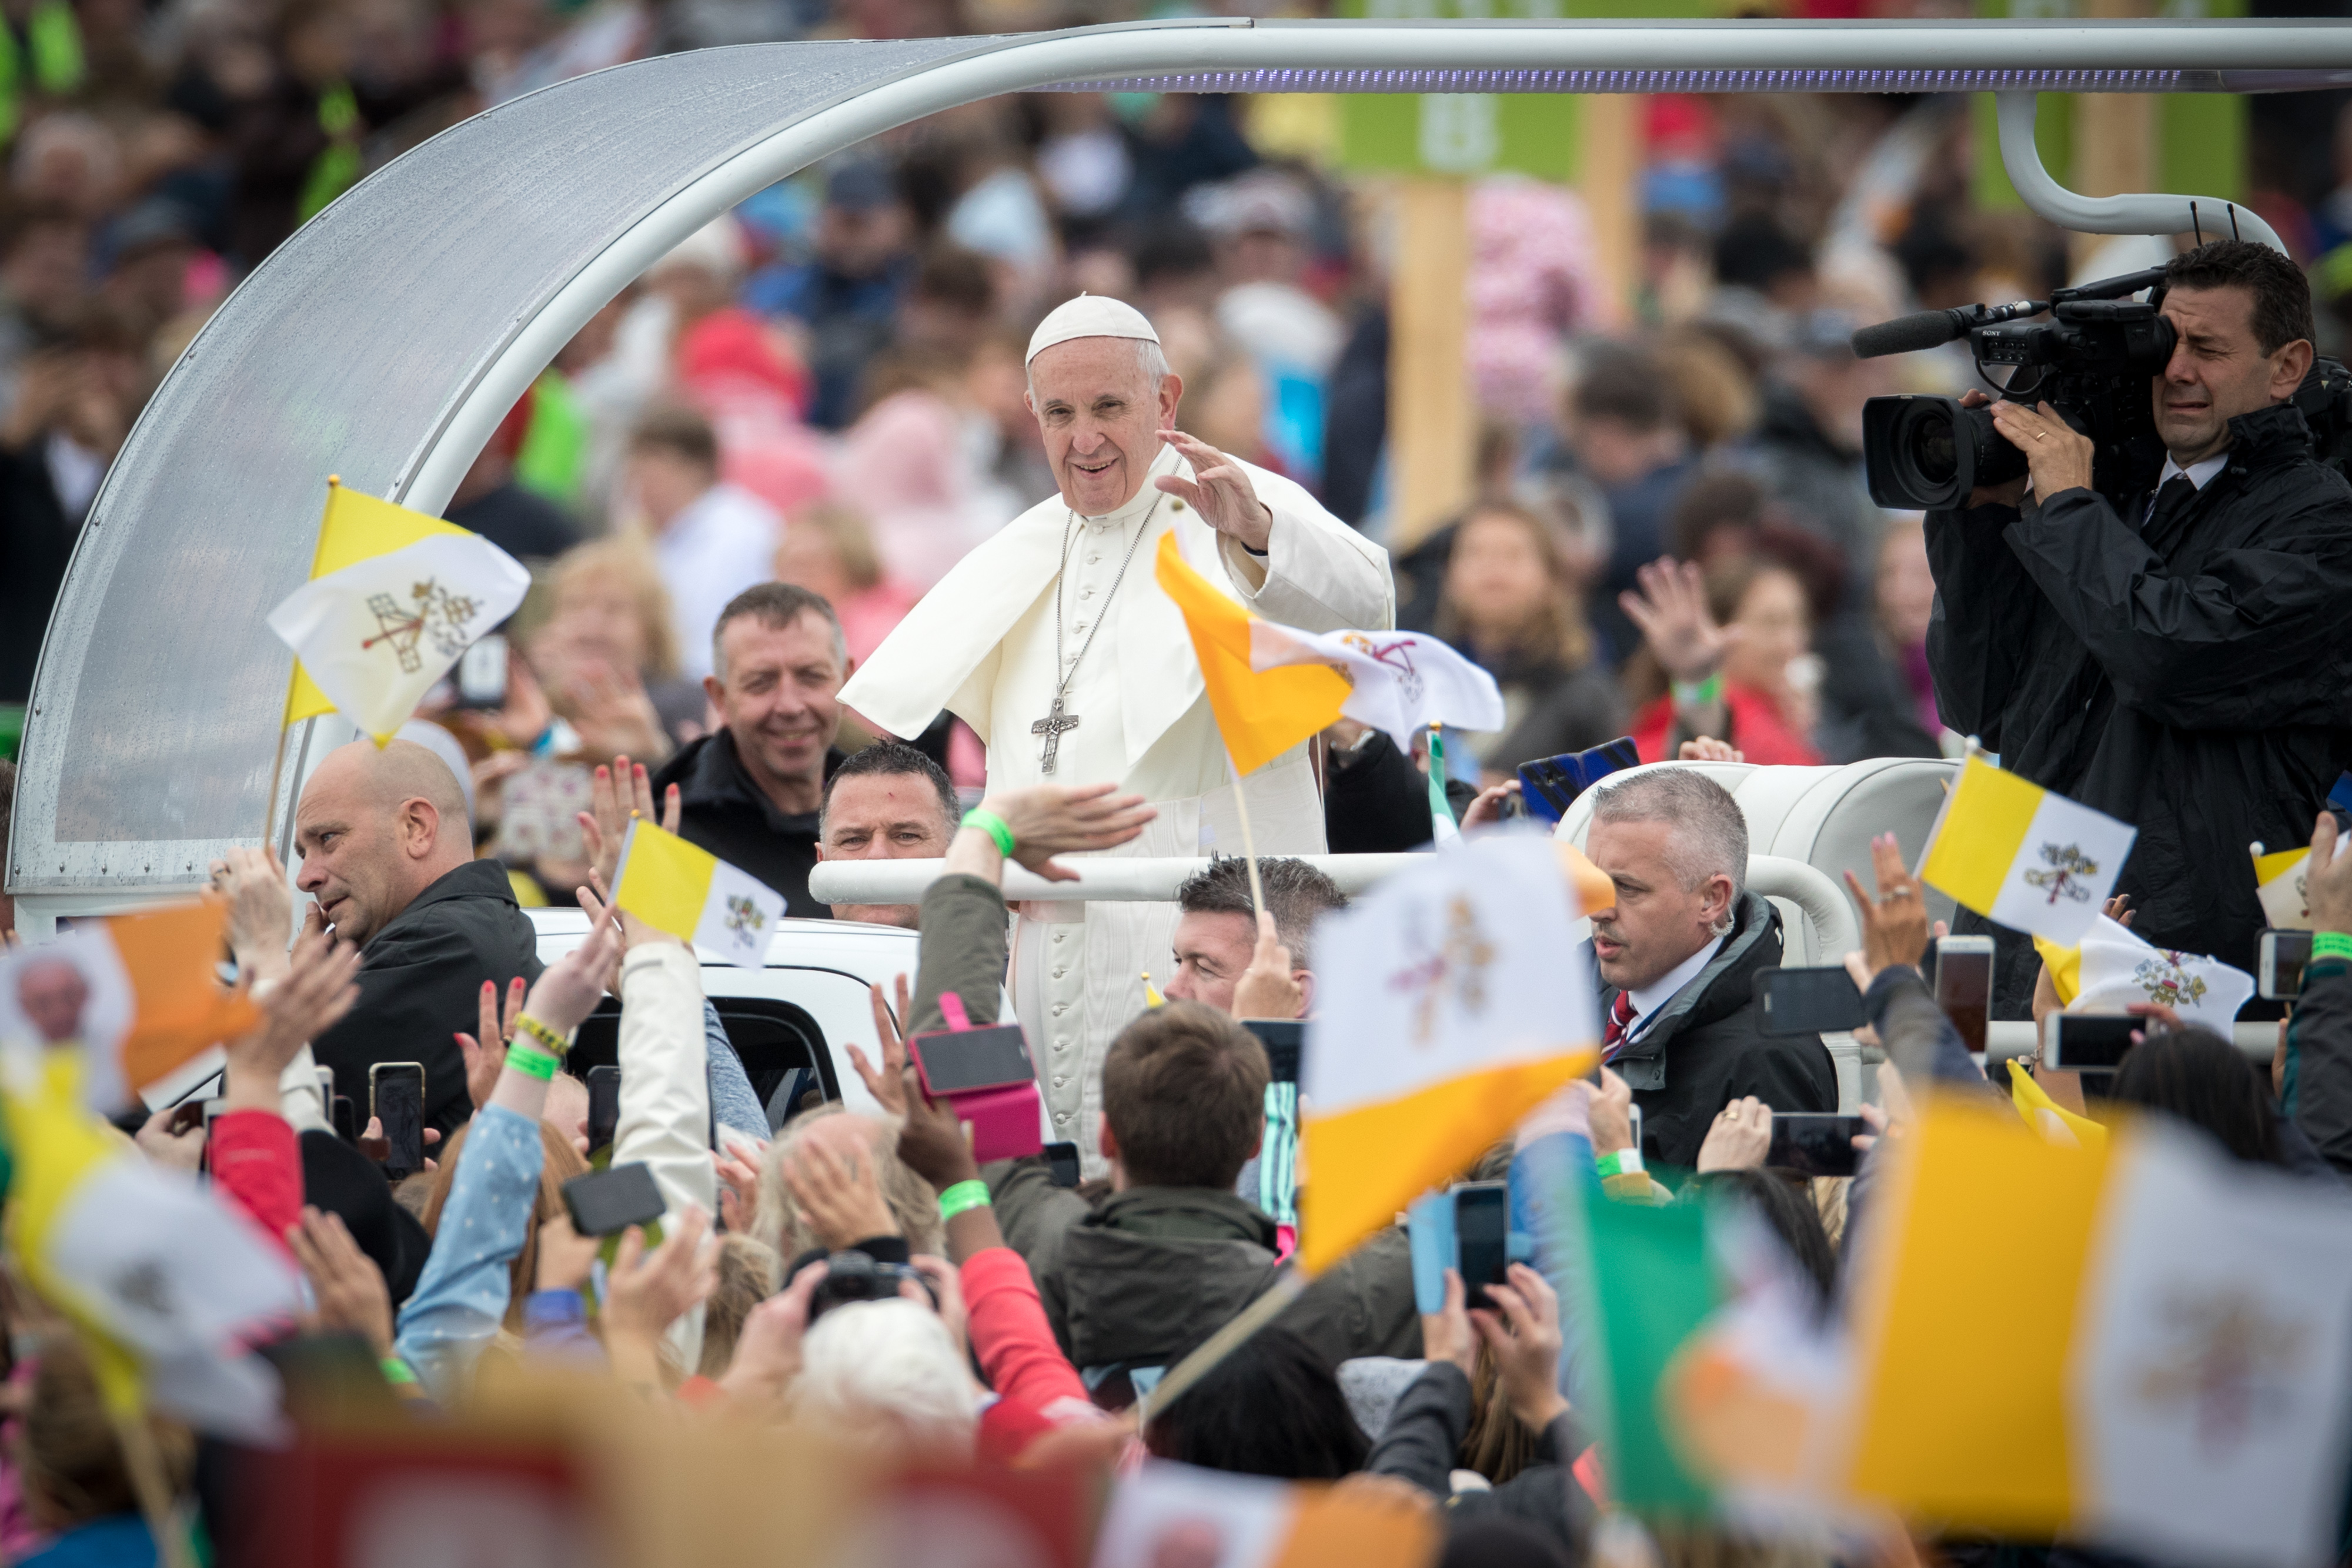 DUBLIN, IRELAND - AUGUST 26:  Pope Francis arrives as people gather for the Closing Mass in Phoenix Park on August 26, 2018 in Dublin, Ireland. A congregation of approximately 500,000 people have gathered in Phoenix Park for the Closing Mass of the visit of Pope Francis to Ireland, centred on the Papal Cross in Phoenix Park, which was the site of the historic 1979 Papal Mass. Pope Francis is the 266th Catholic Pope and current sovereign of the Vatican. His visit, the first by a Pope since John Paul II's in 1979, is expected to attract hundreds of thousands of Catholics to a series of events in Dublin and Knock. During his visit he will have private meetings with victims of sexual abuse by Catholic clergy. (Photo by Matt Cardy/Getty Images)